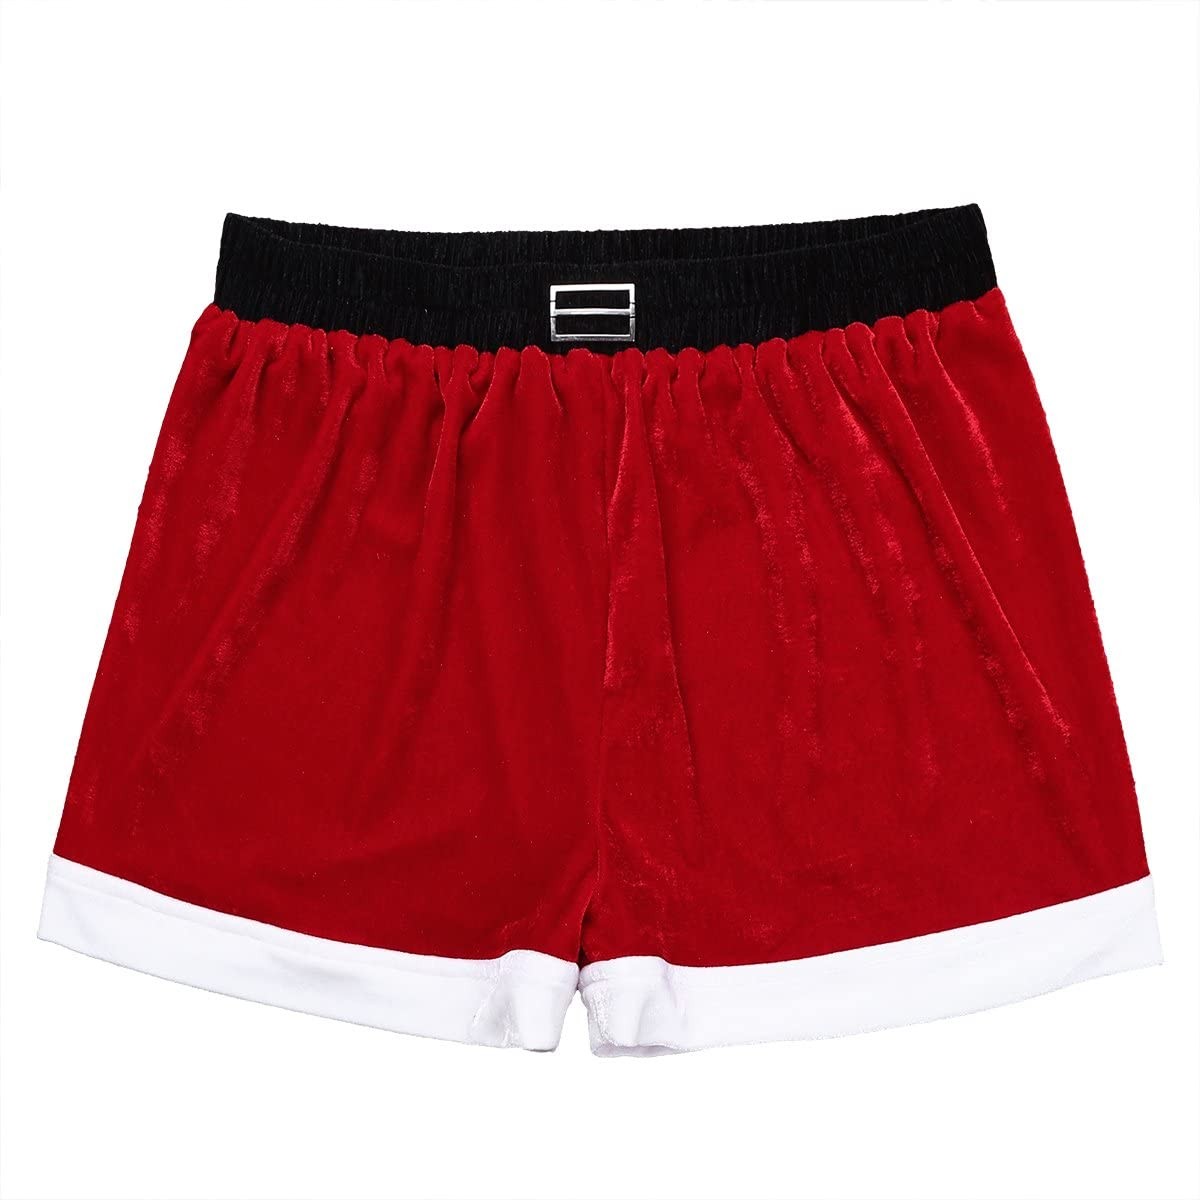 Hedmy Mens Flannel Virginia Beach Mall Christmas Holiday Claus Boxer Trunks Sh Santa Outlet sale feature